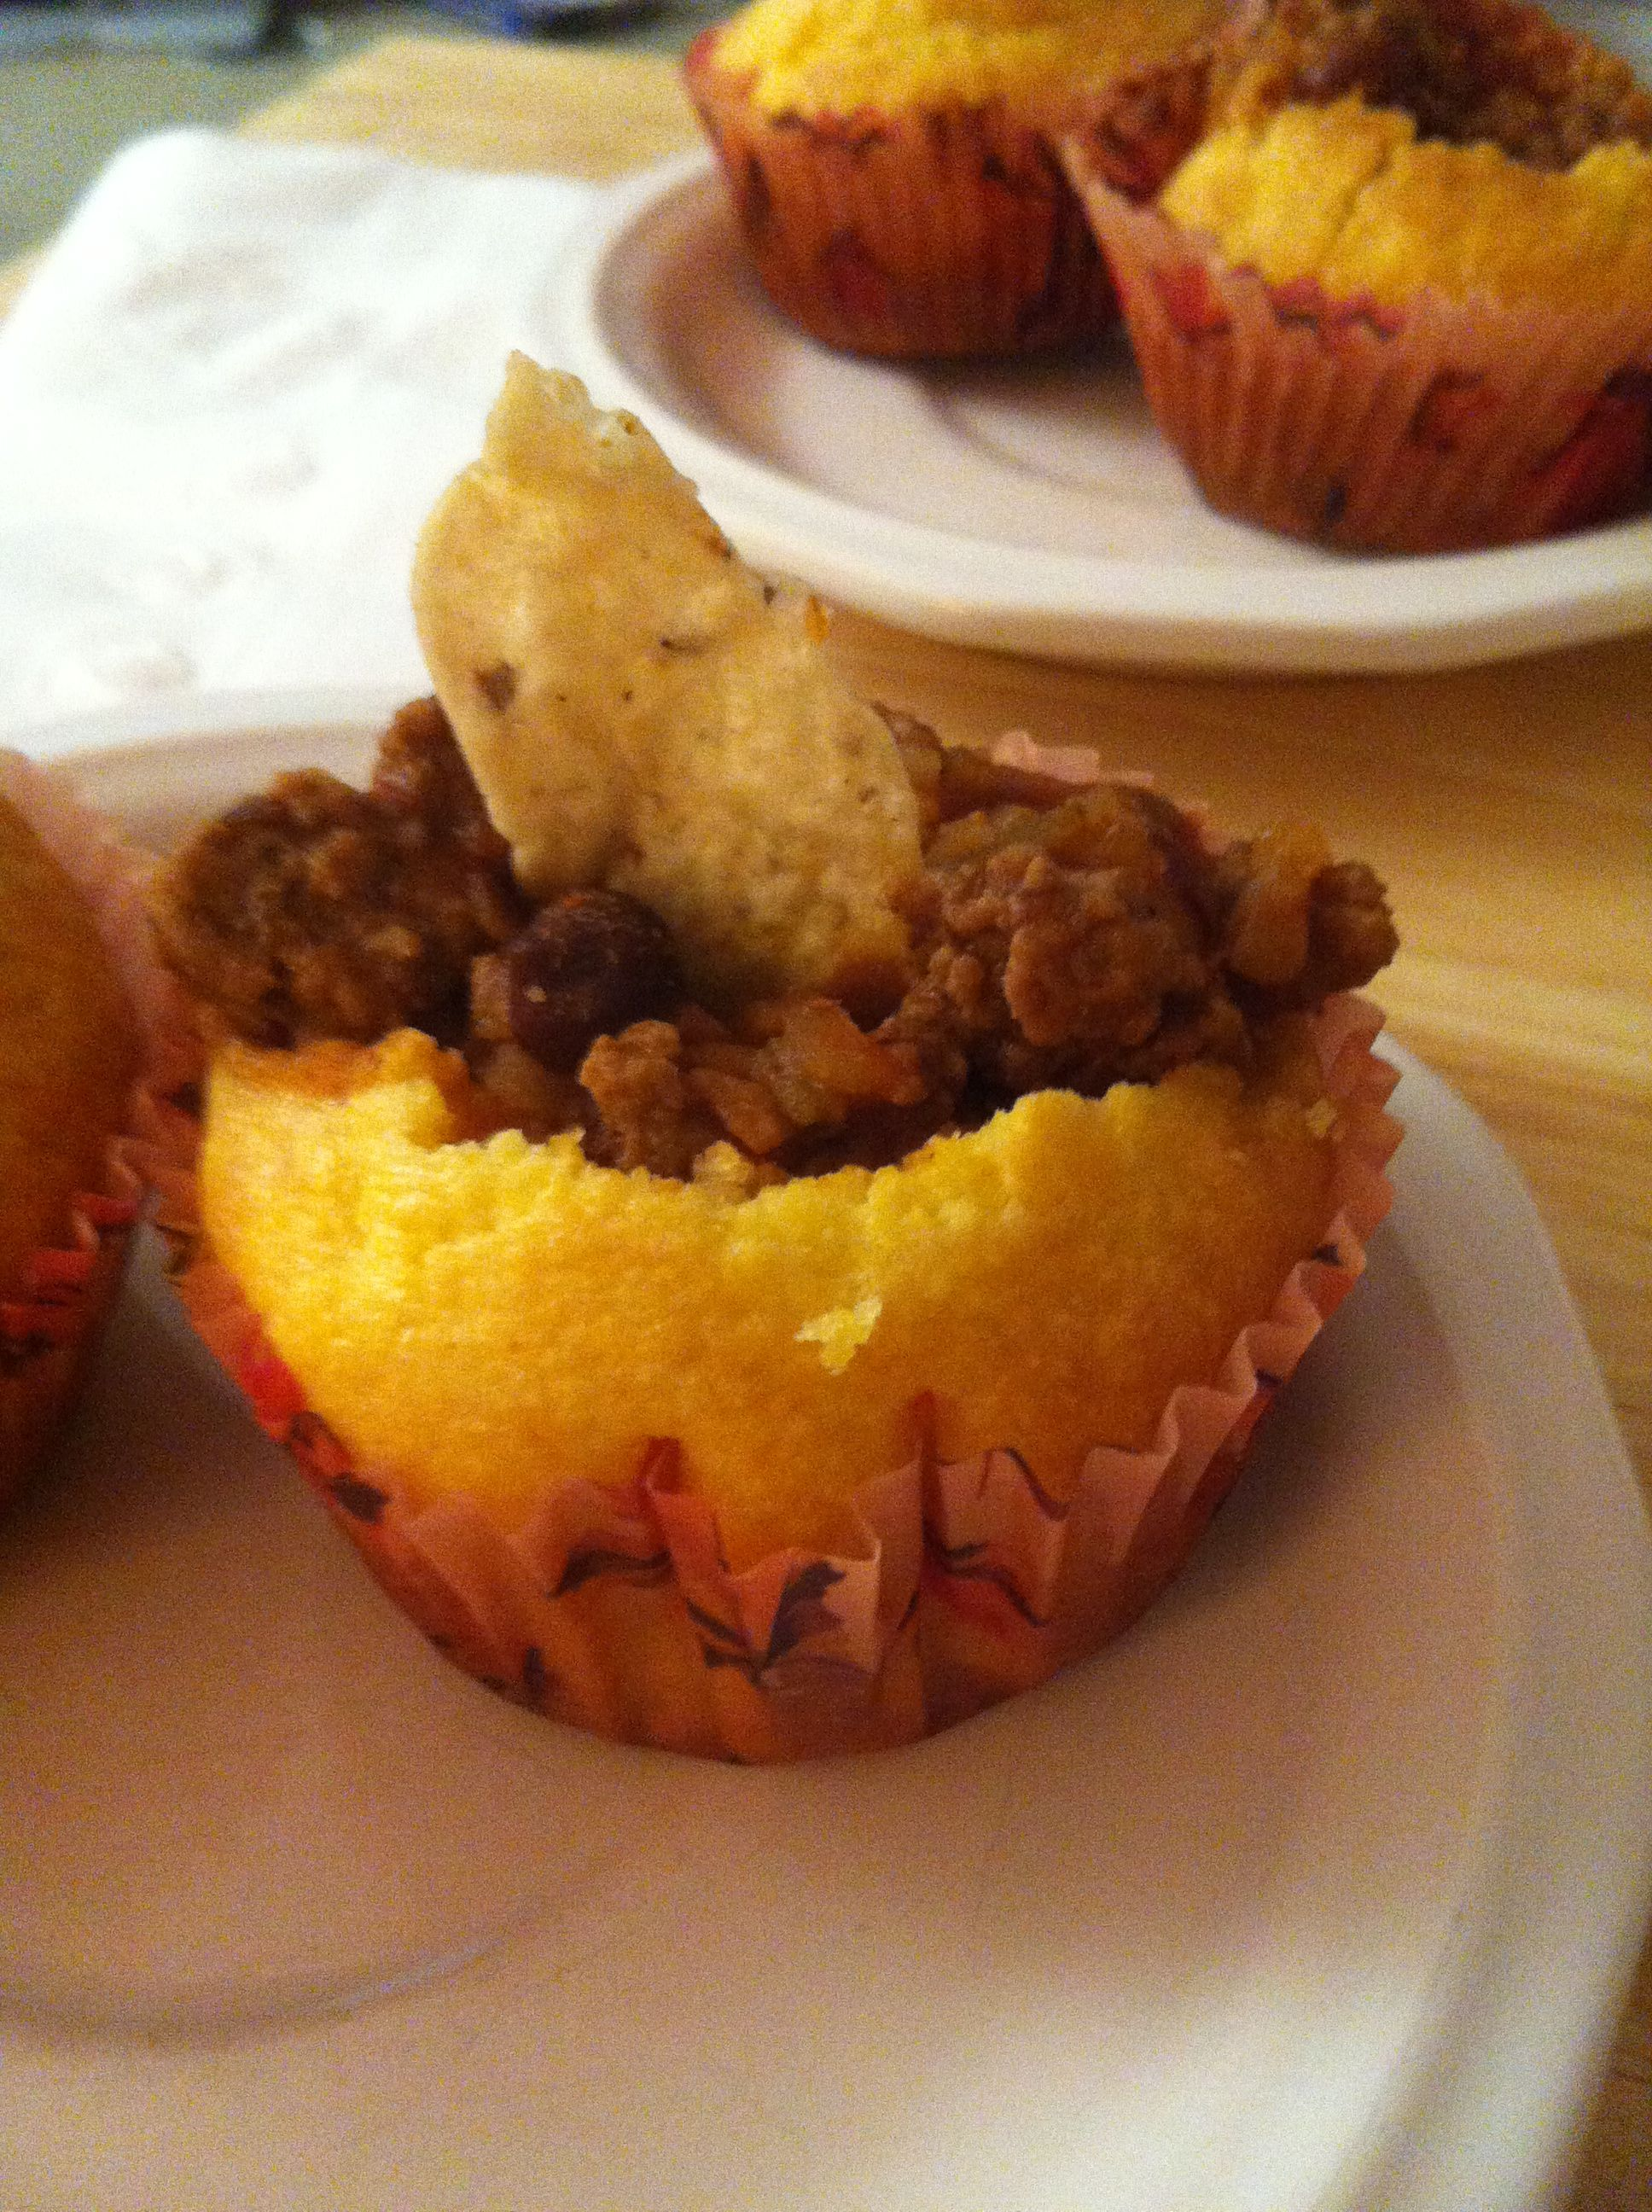 Cornbread muffins with chili and a tortilla chip! Yum!